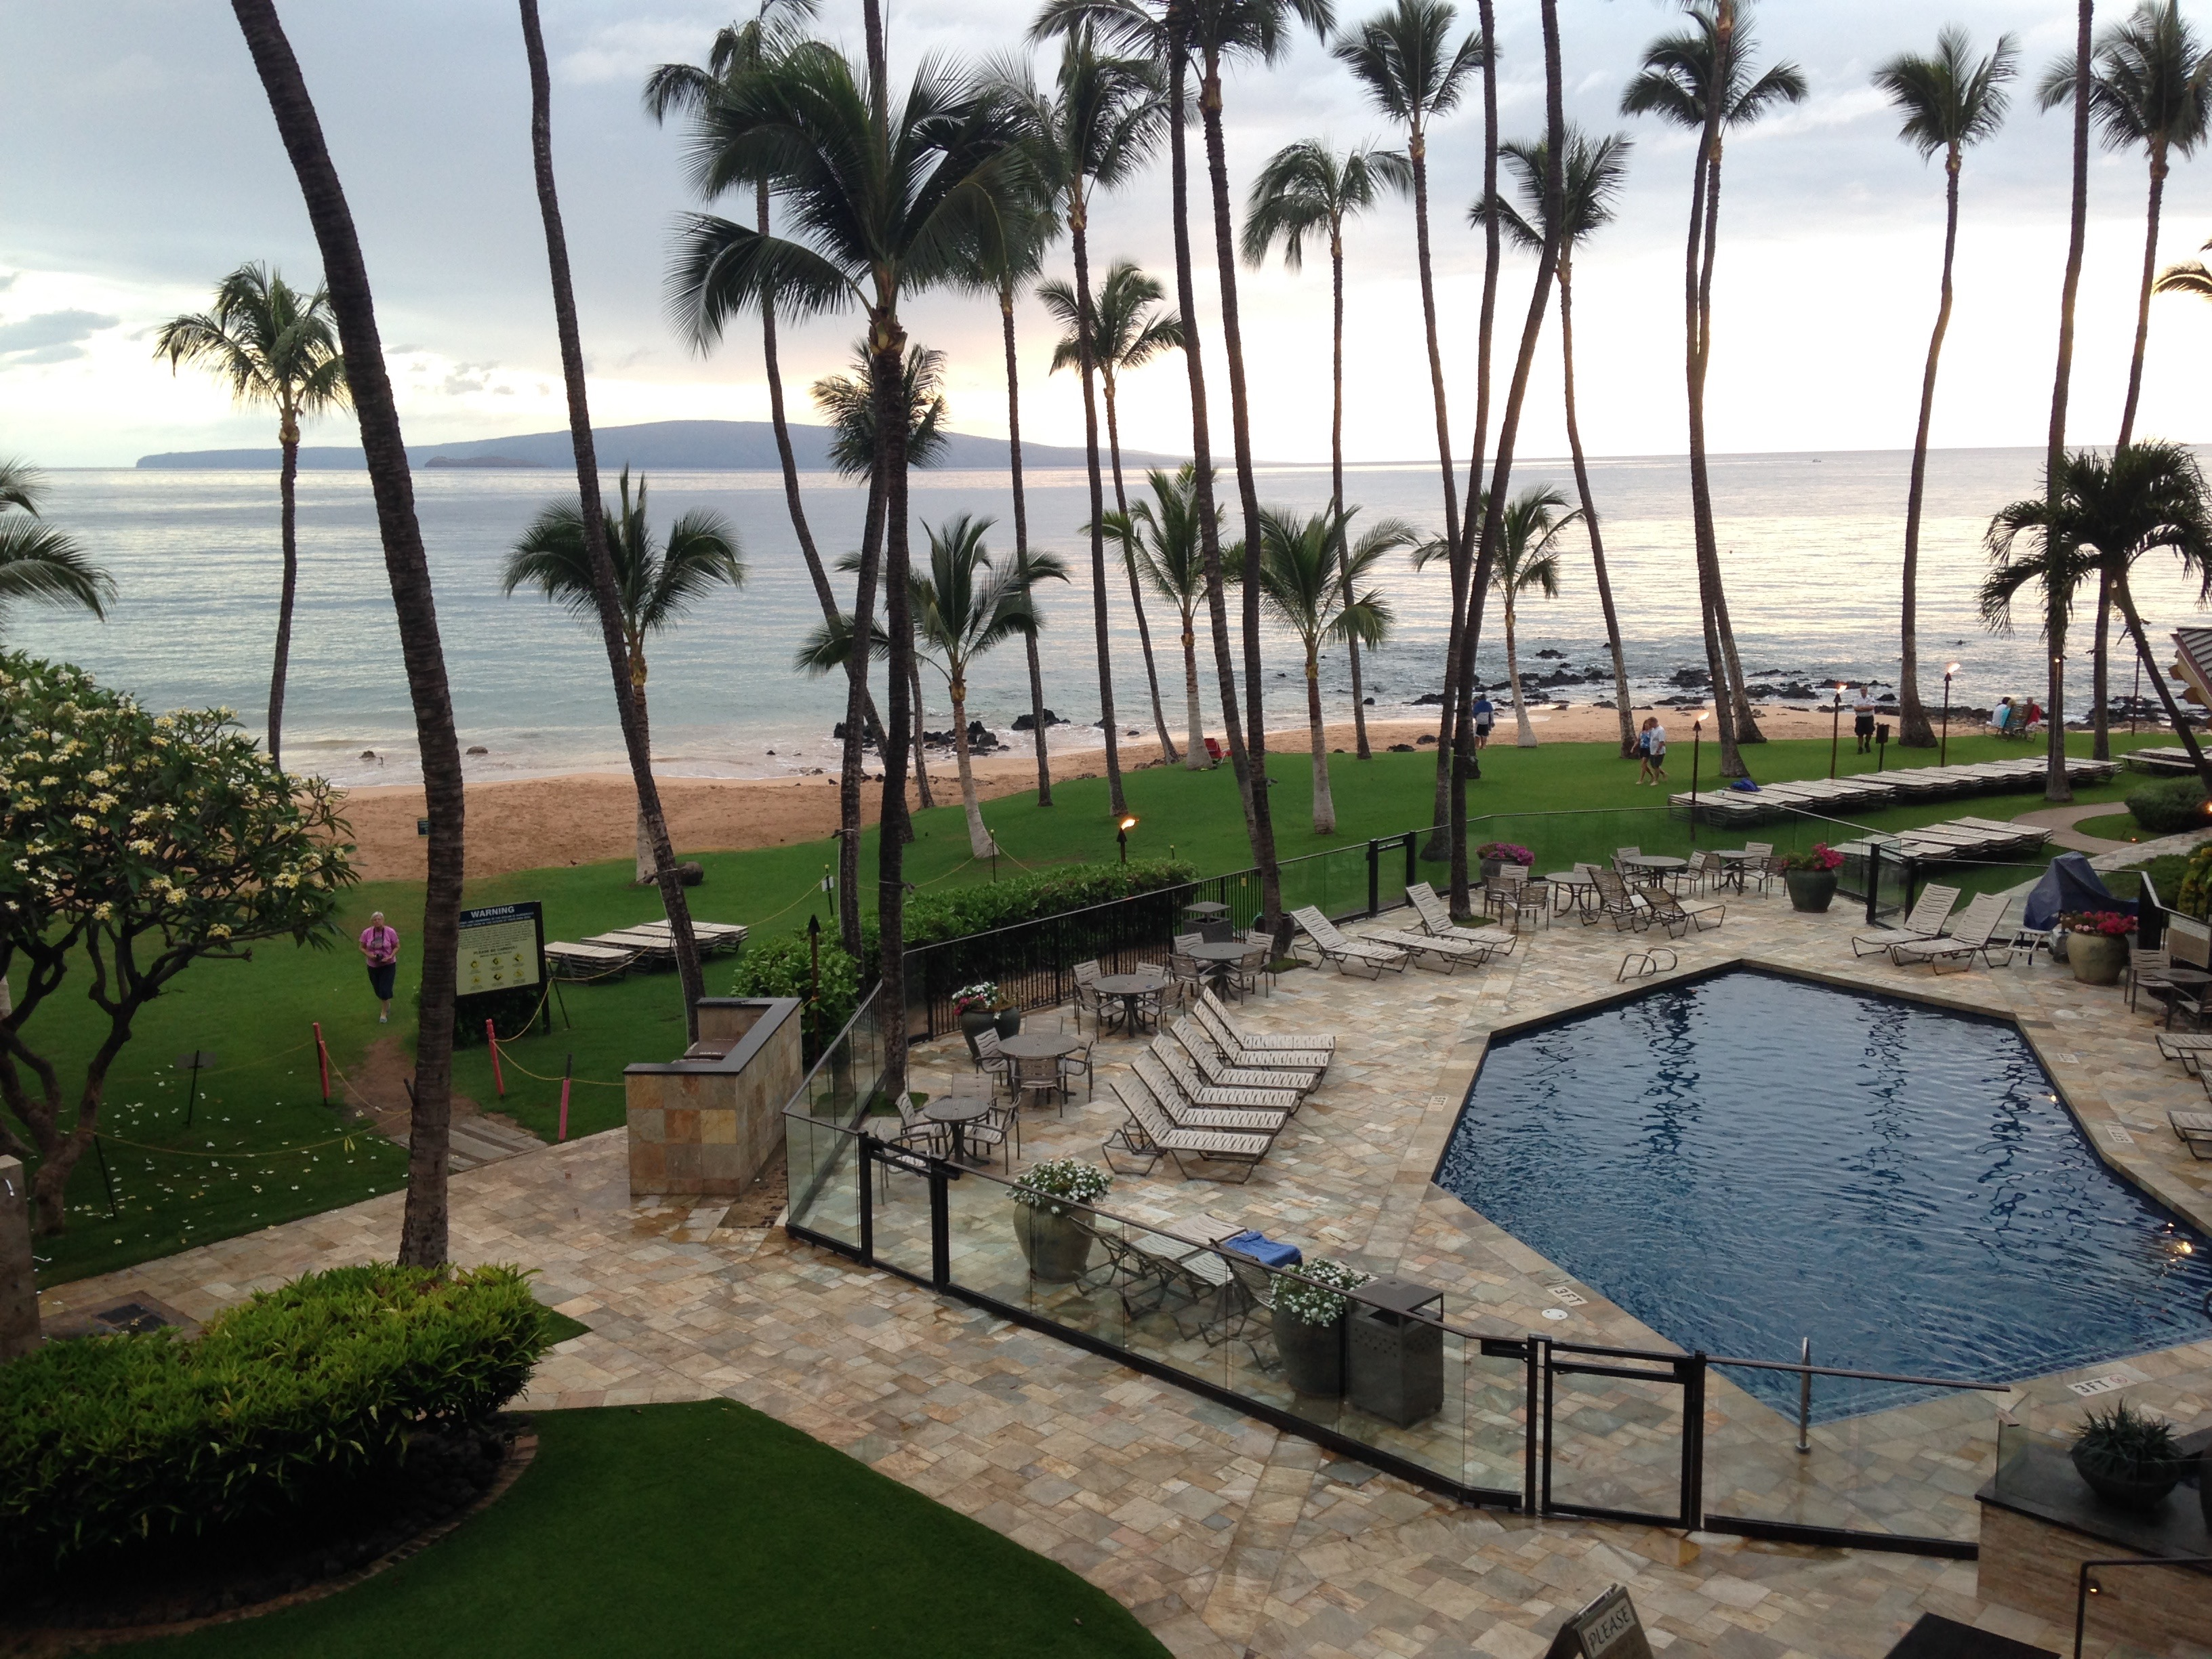 5. The patio of our hotel room in Maui (2015)